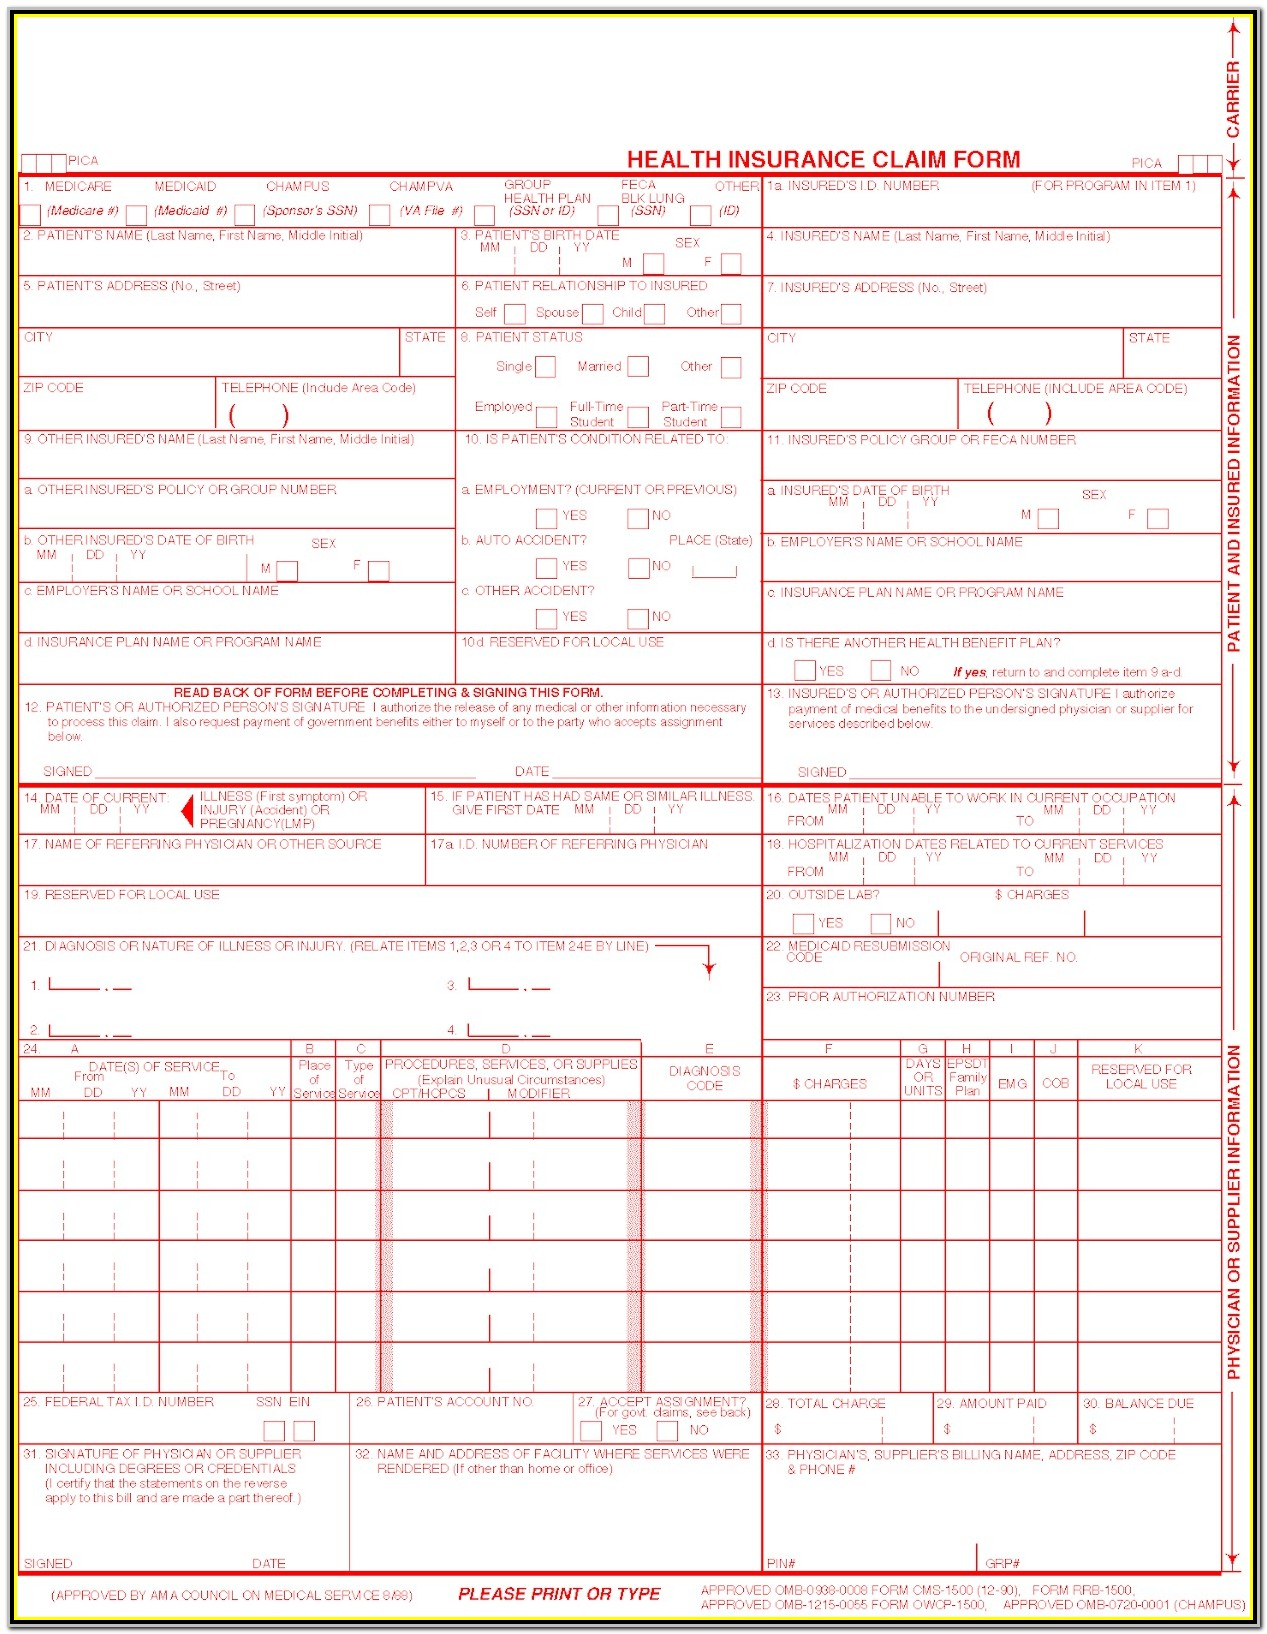 Unitedhealthcare Health Insurance Claim Form 1500